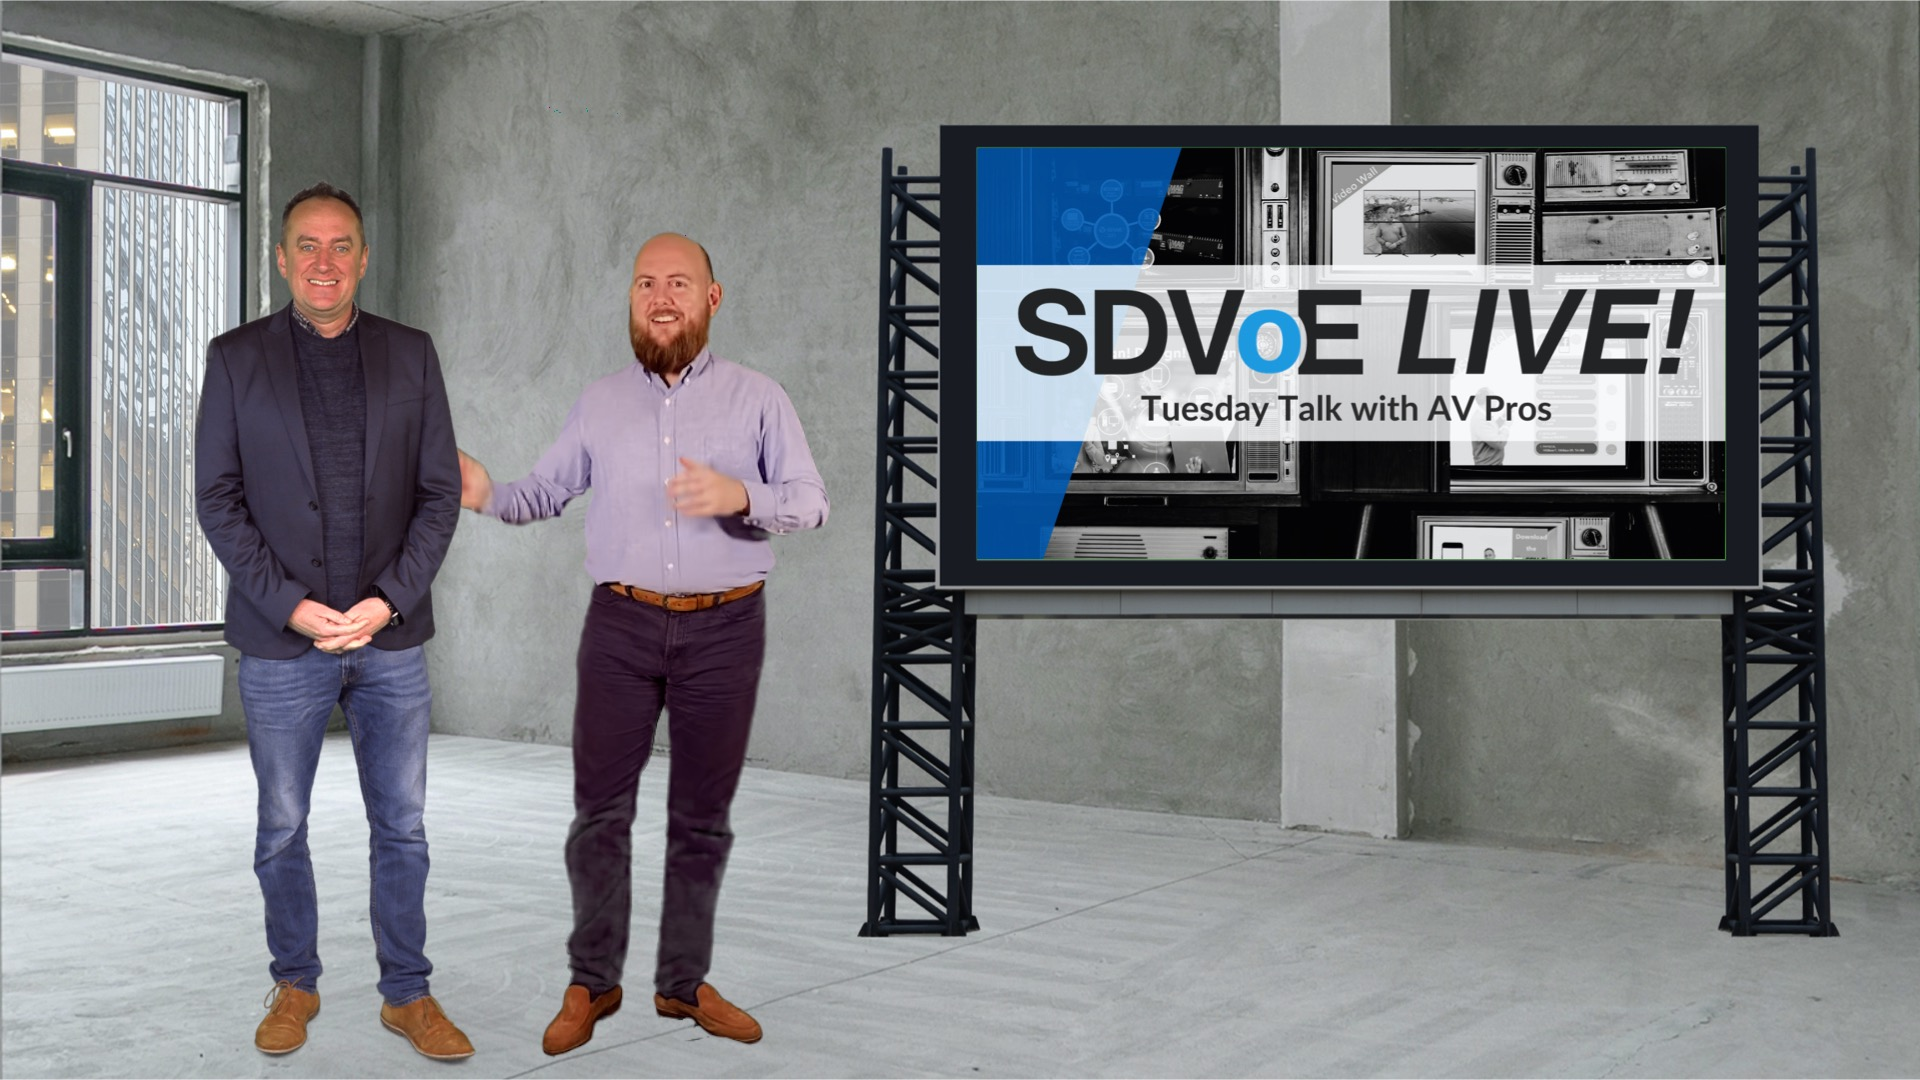 SDVoE LIVE! Episode 1: A New Architecture for Network Convergence